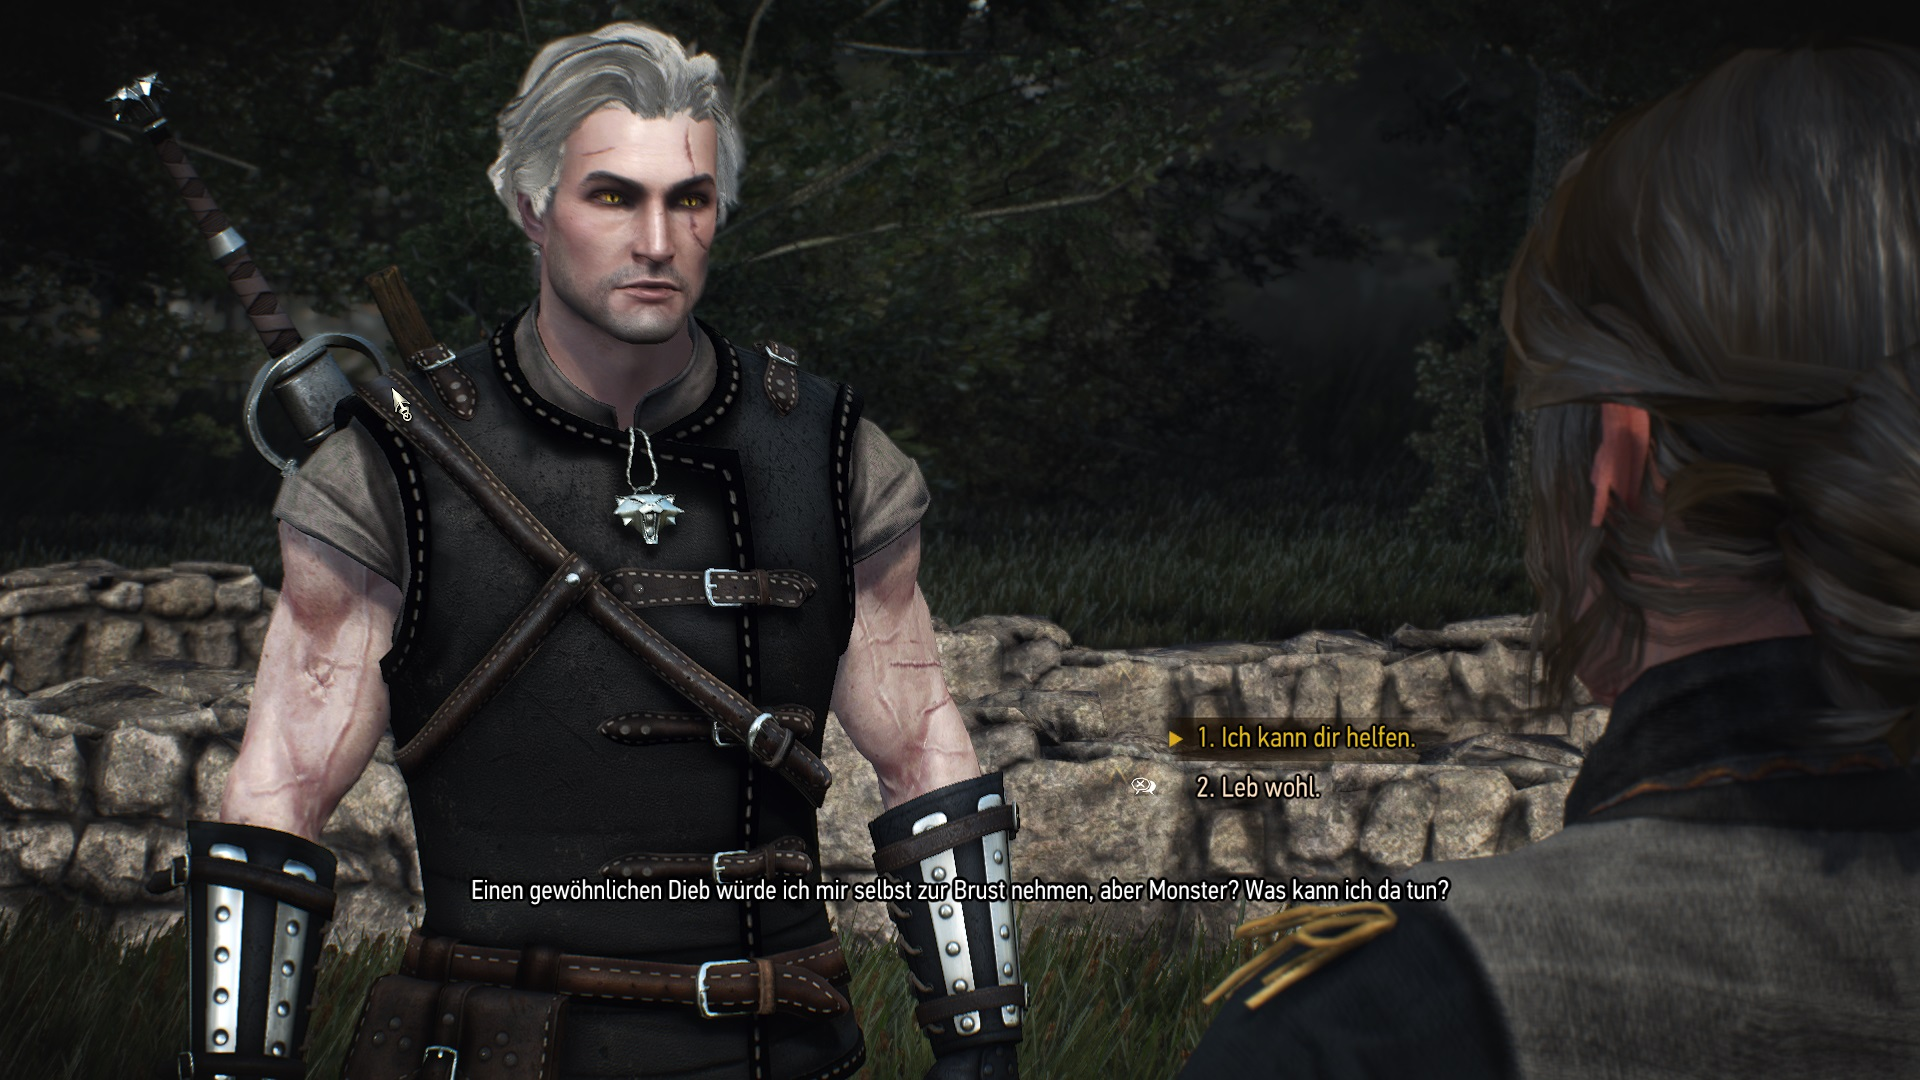 The Witcher 3 14.10.2020 11_30_37.jpg